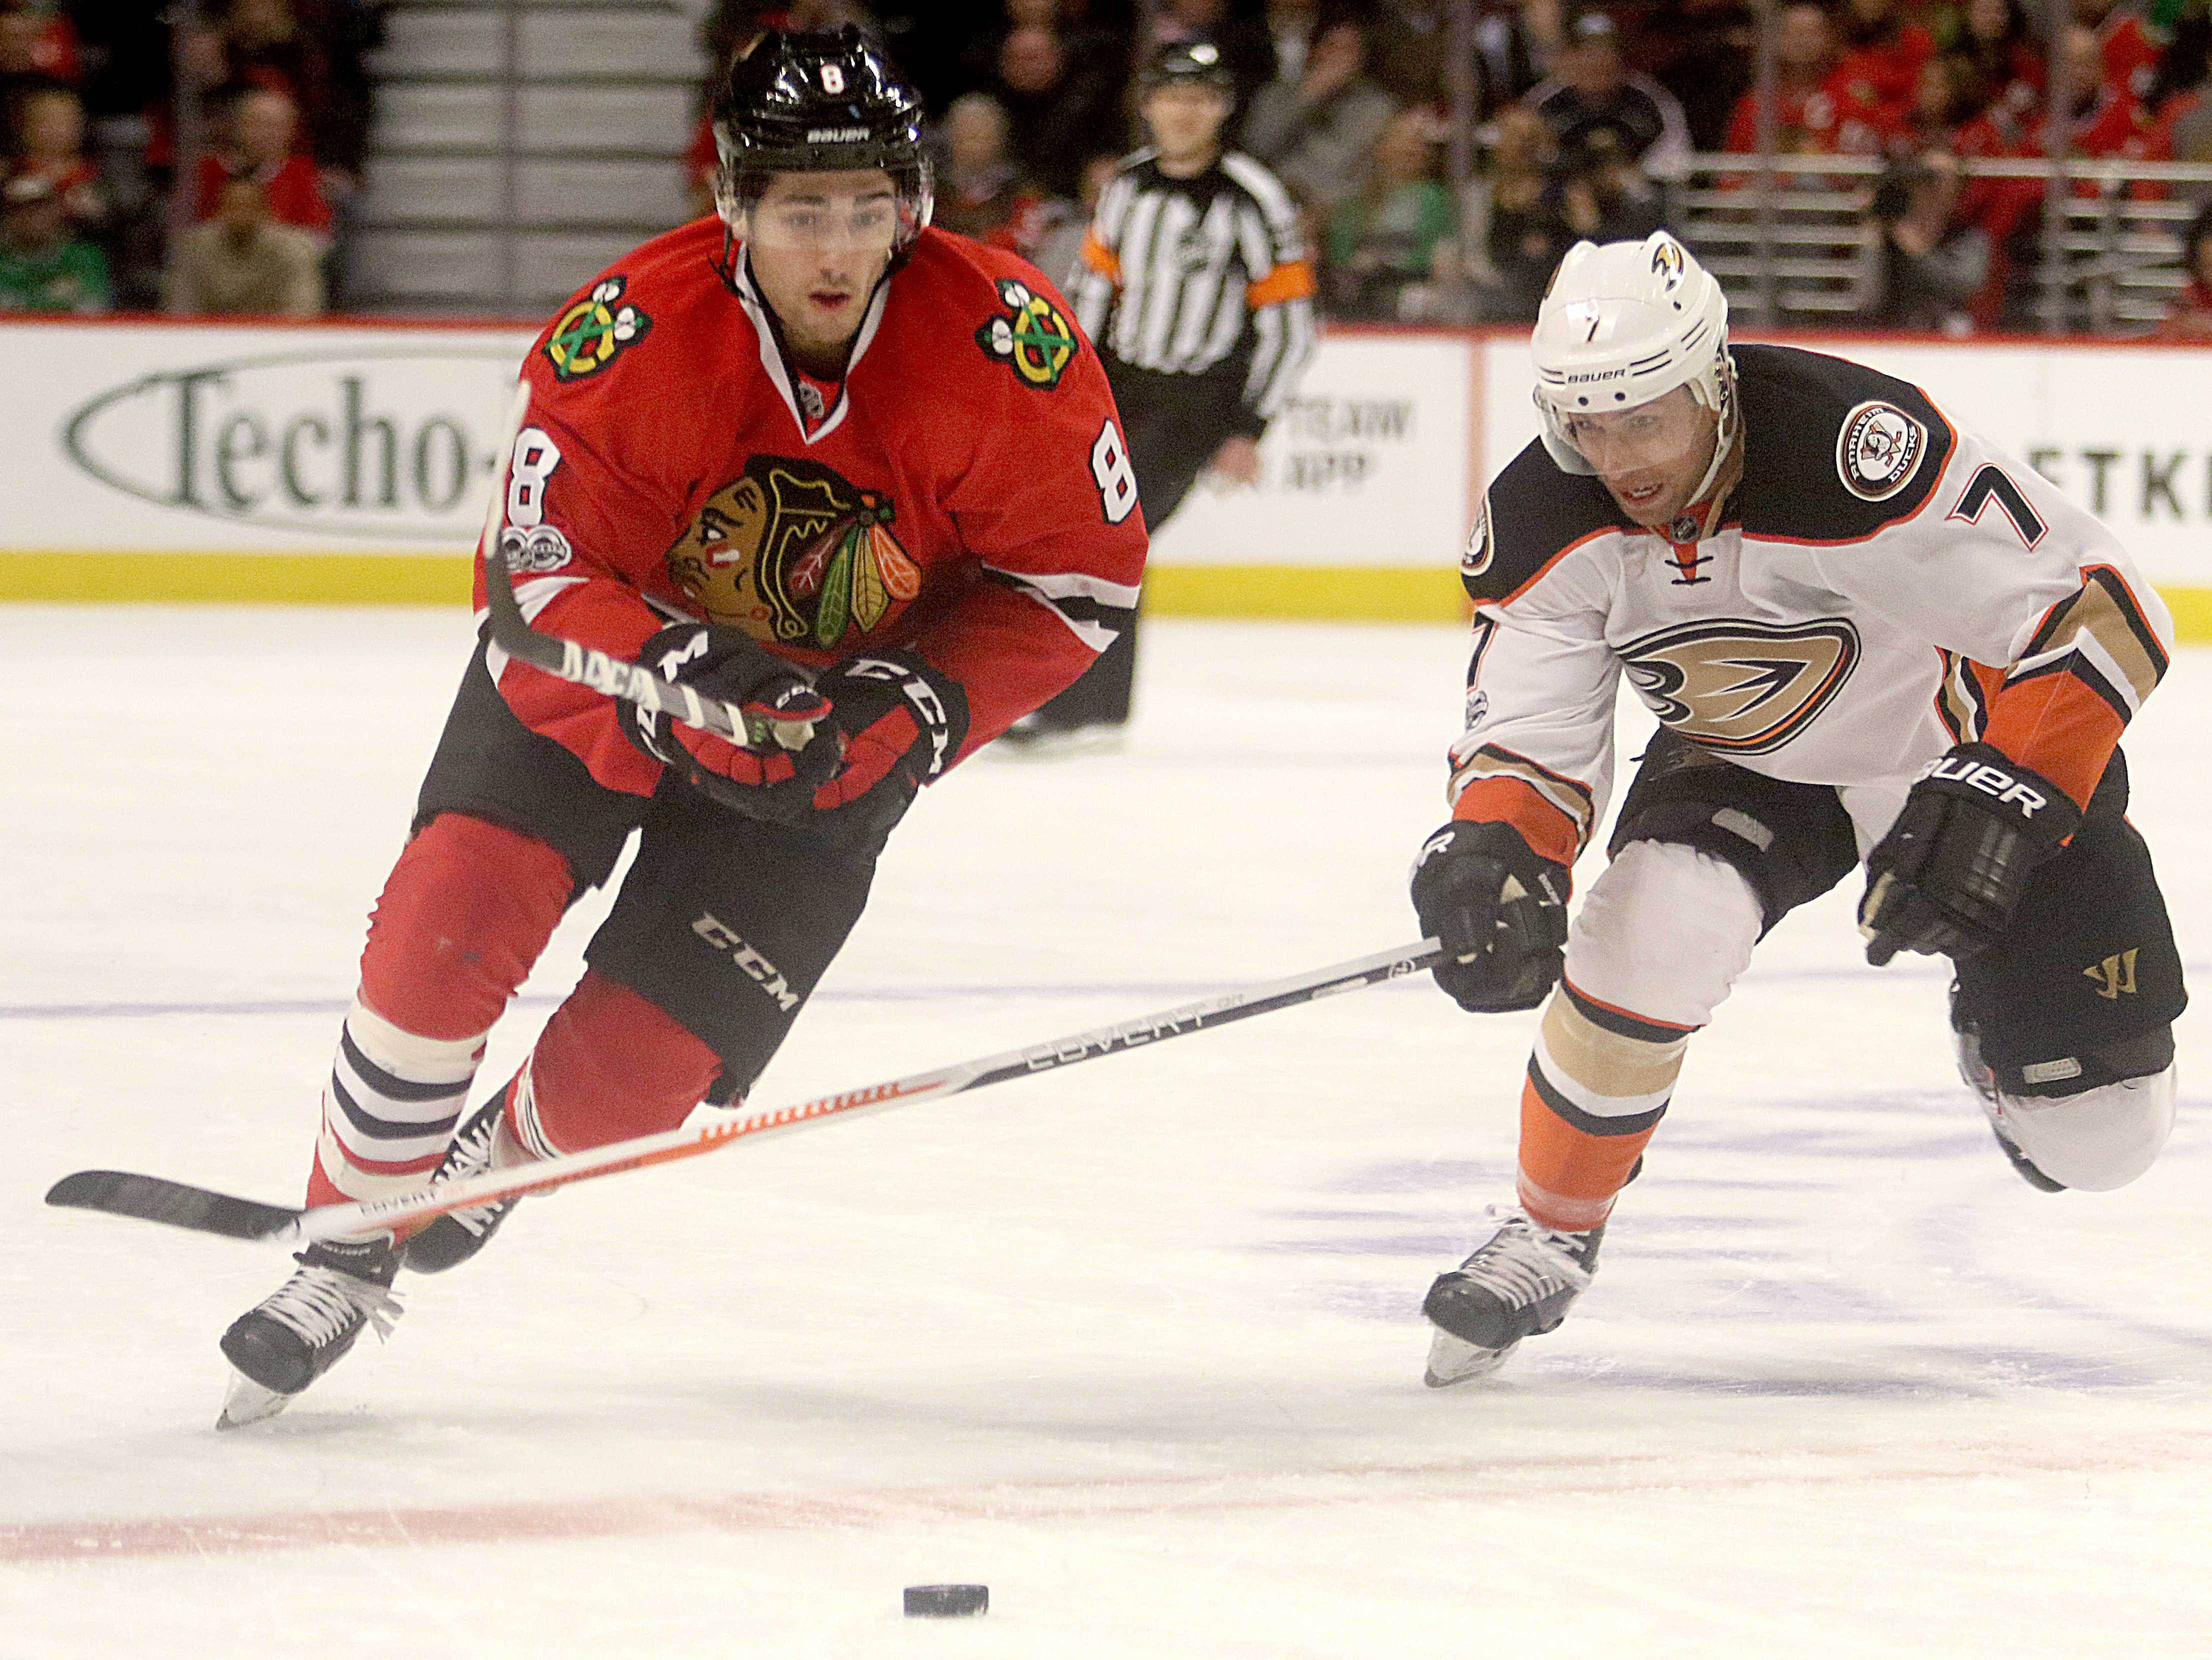 Blackhawks center Nick Schmaltz races Anaheim Ducks left wing Andrew Cogliano for the puck during a game last season. If Schmaltz can center the Blackhawks' second line this season, it would go a long way to giving coach Joel Quenneville's squad a deep, dangerous four-line rotation.